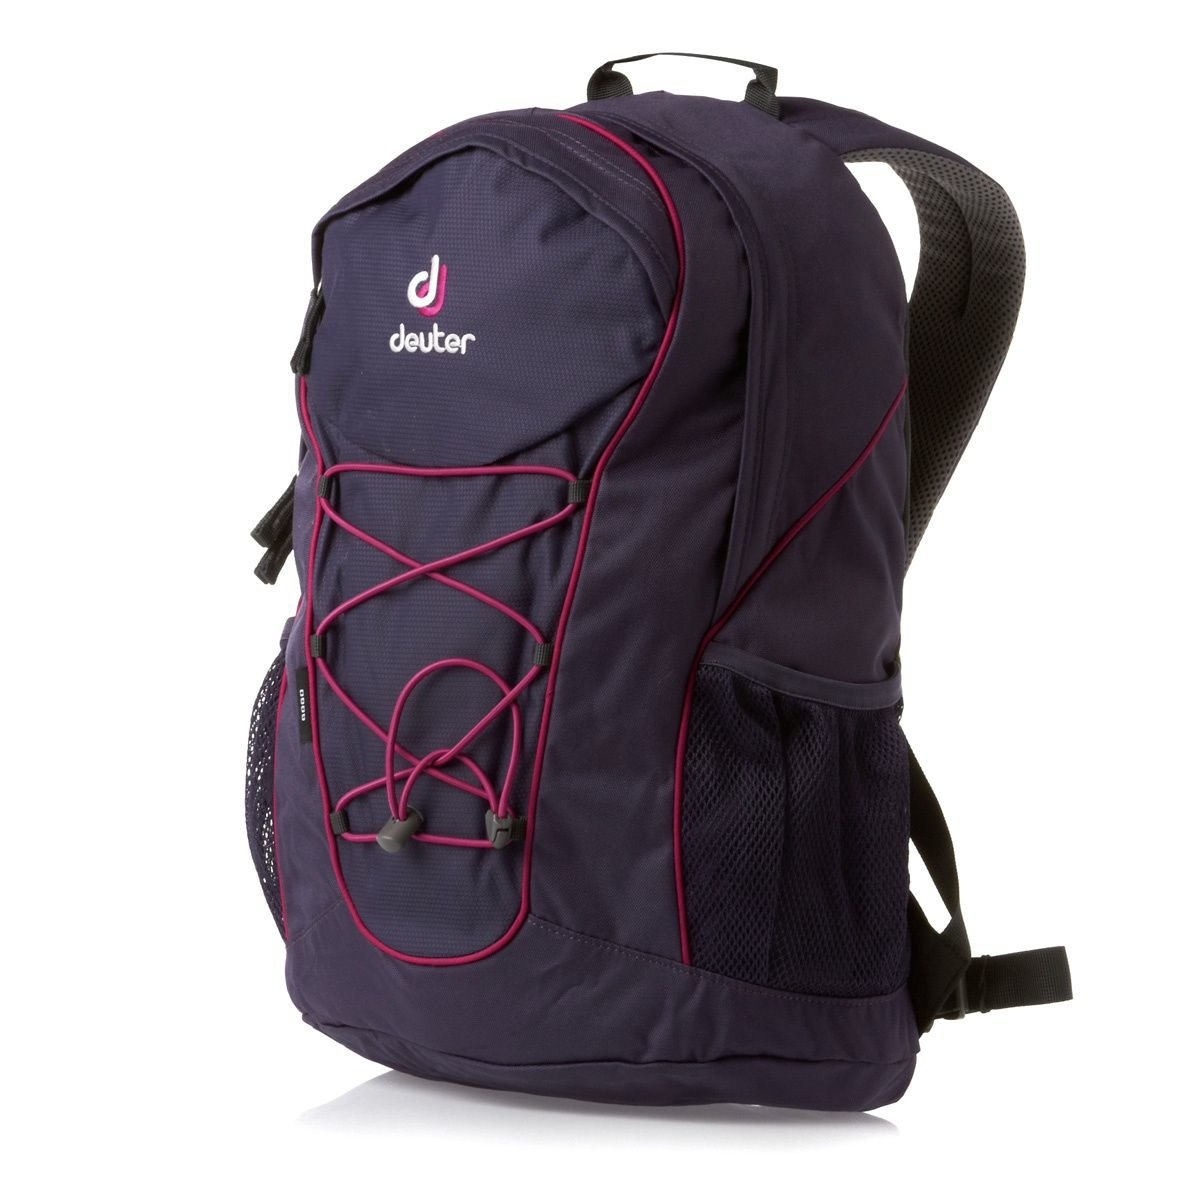 Рюкзак Deuter Gogo alpinegreen-navy (2322) Gogo 3 3820016 2322